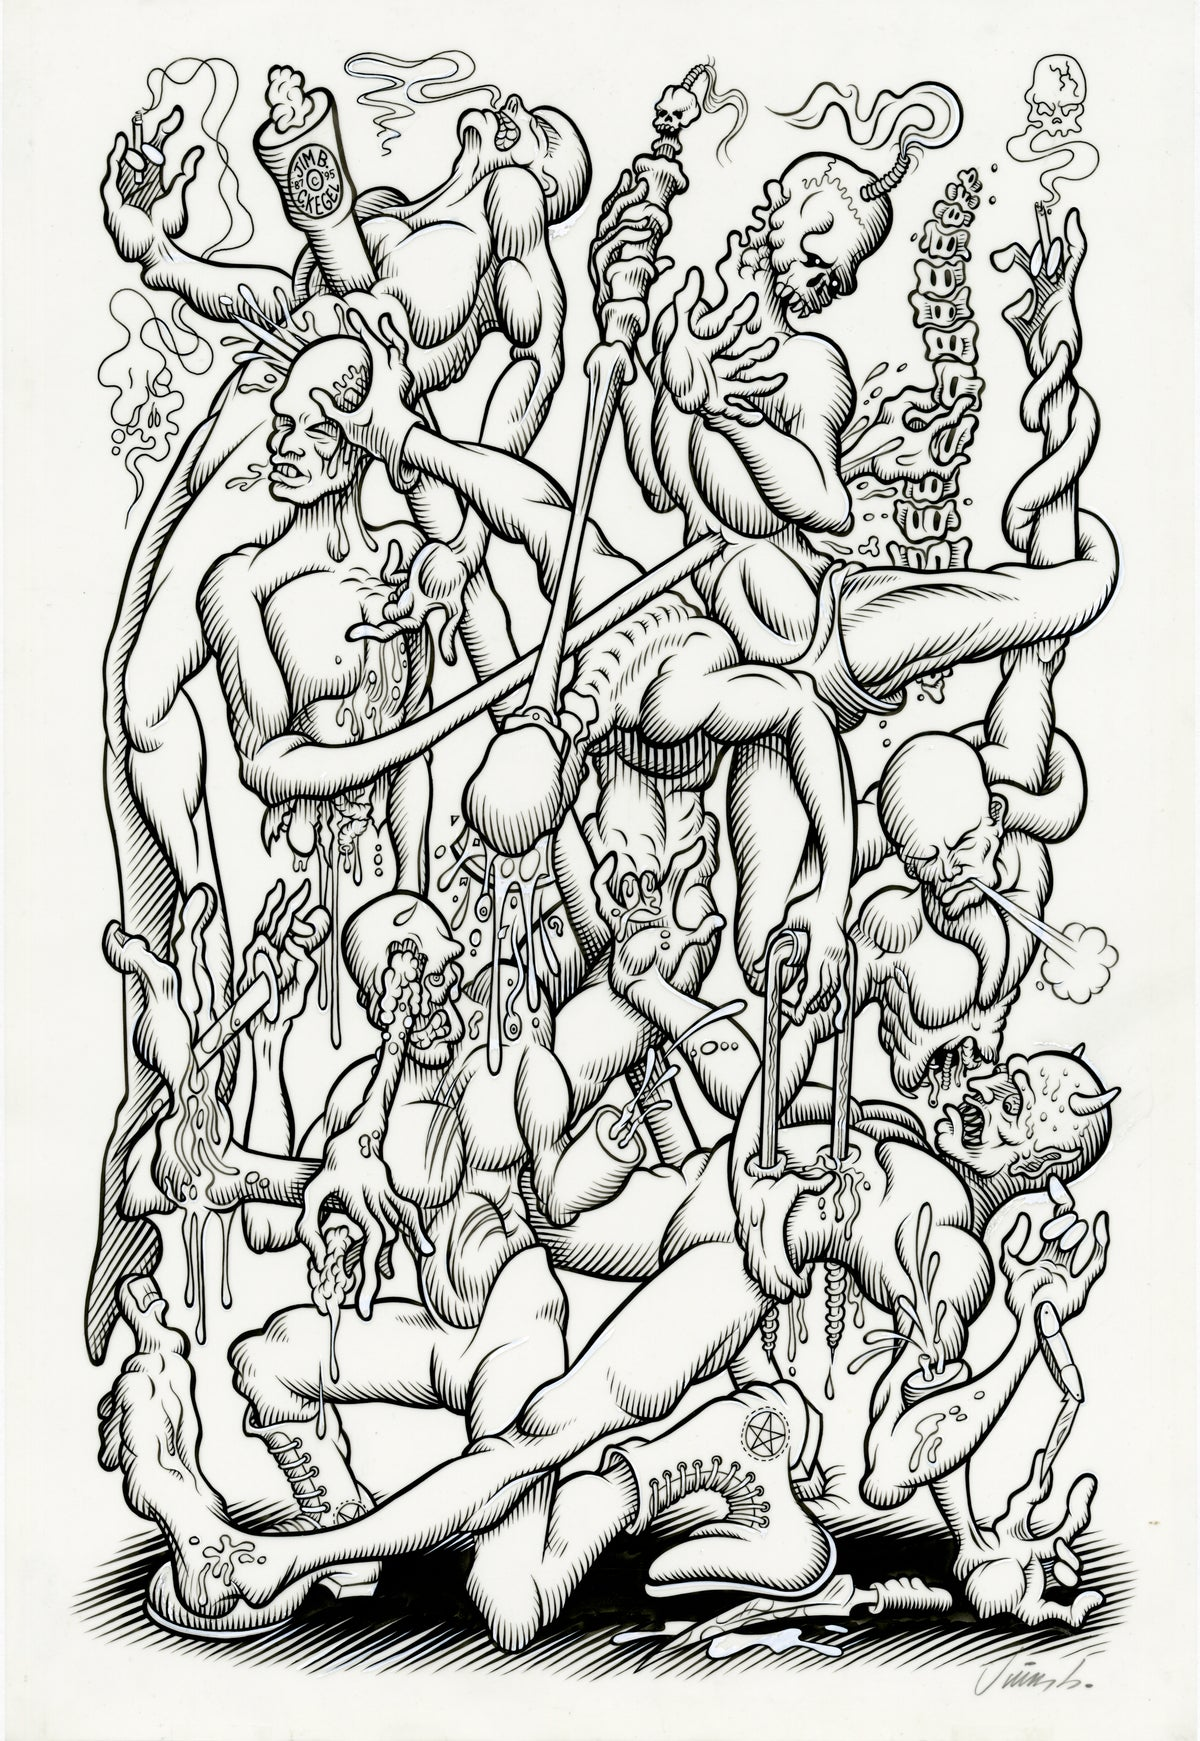 Image of THE GLORY OF MAN No. 2 ink original